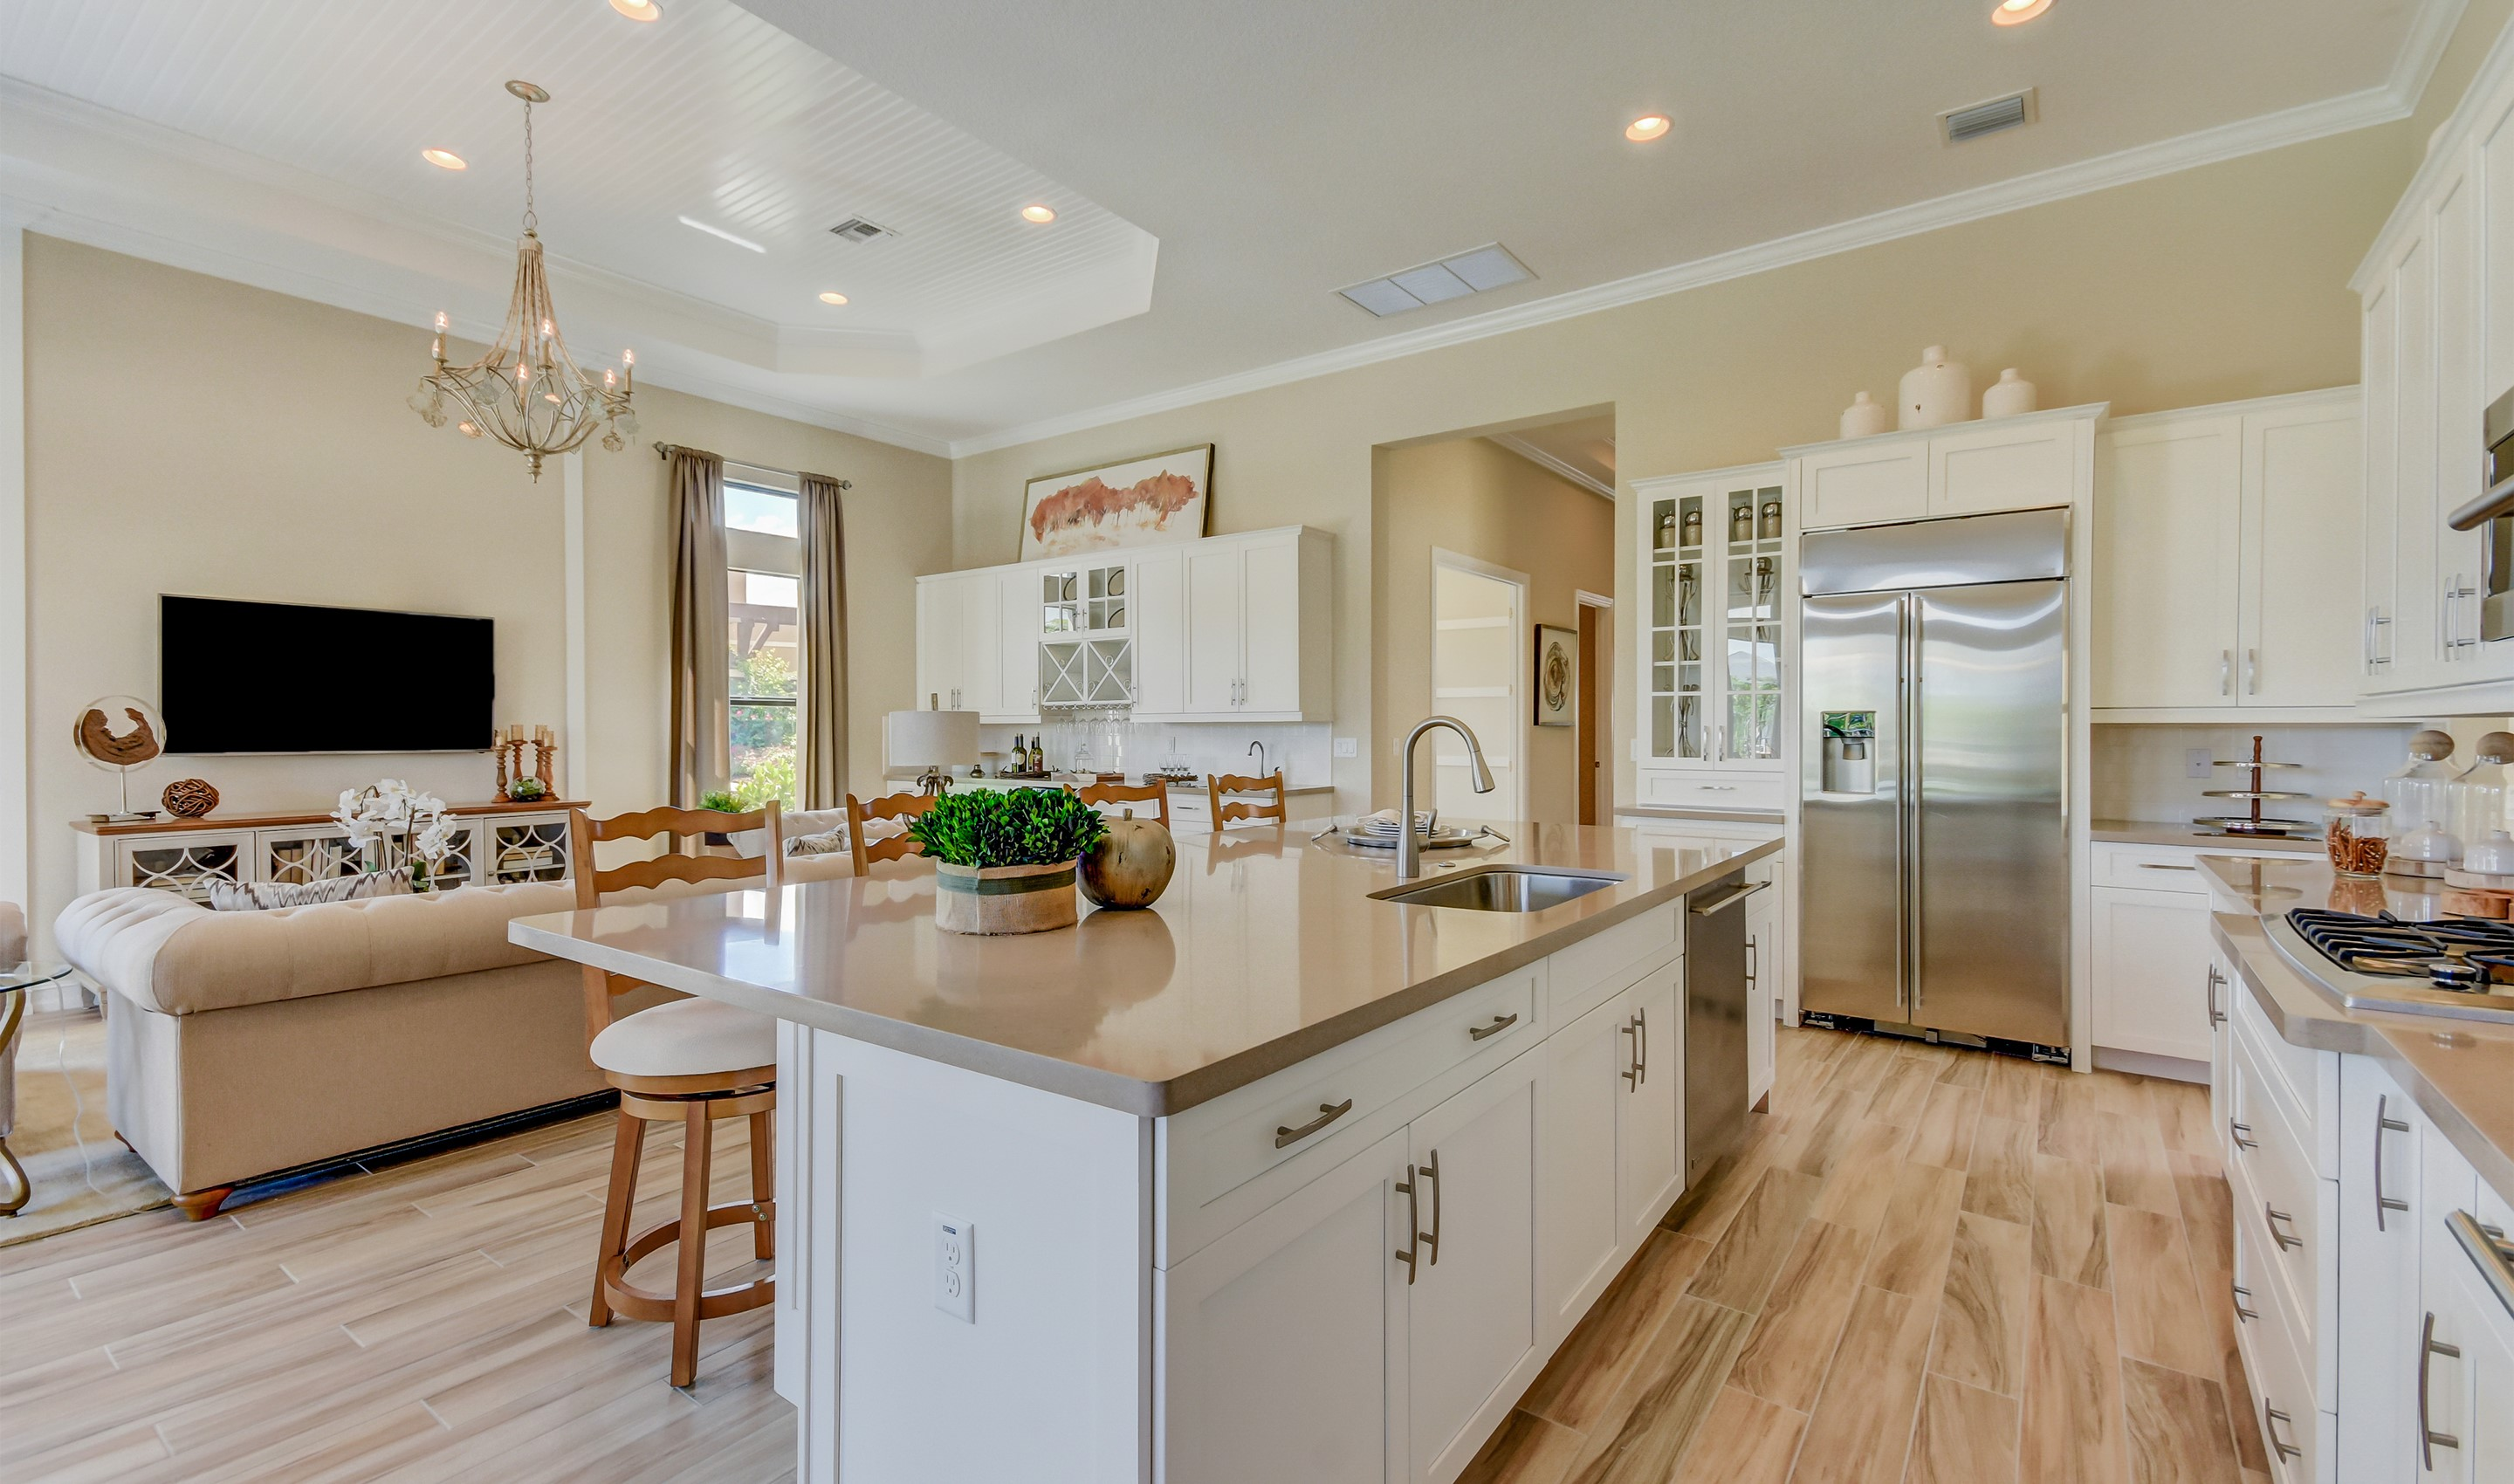 Open kitchen and great room